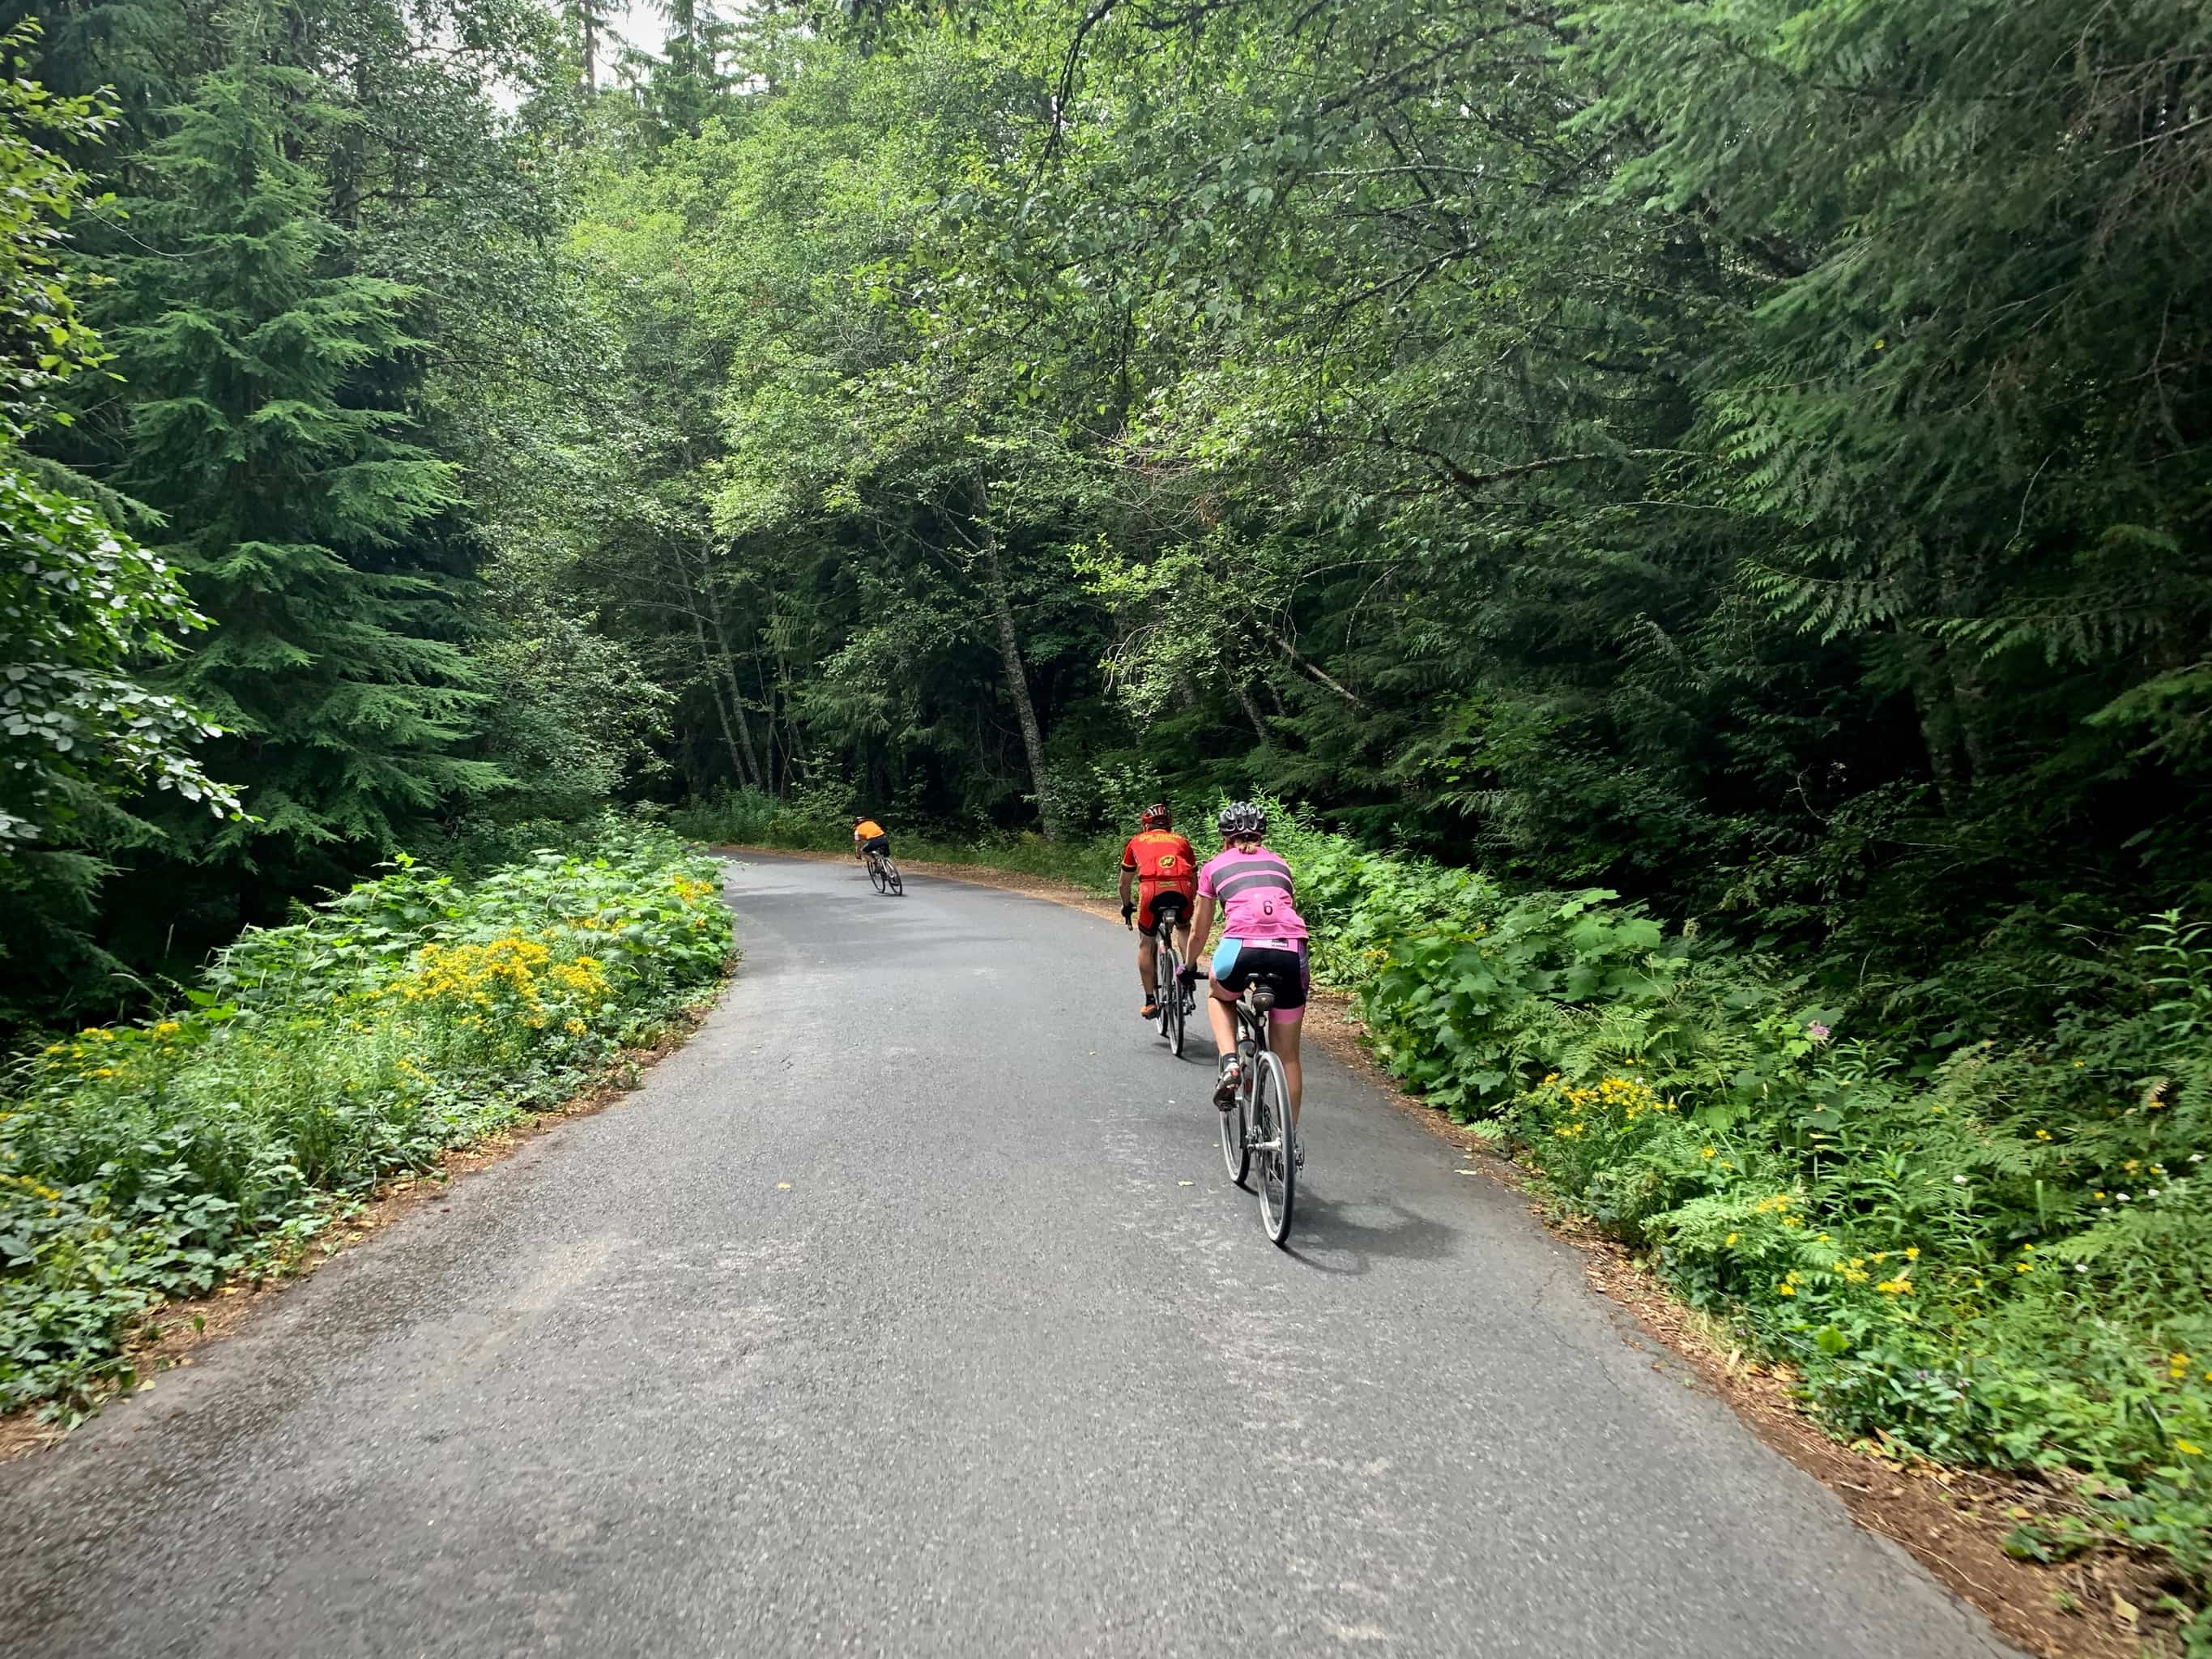 Cyclists descending NF-65, paved road near Panther Creek falls in Washington.